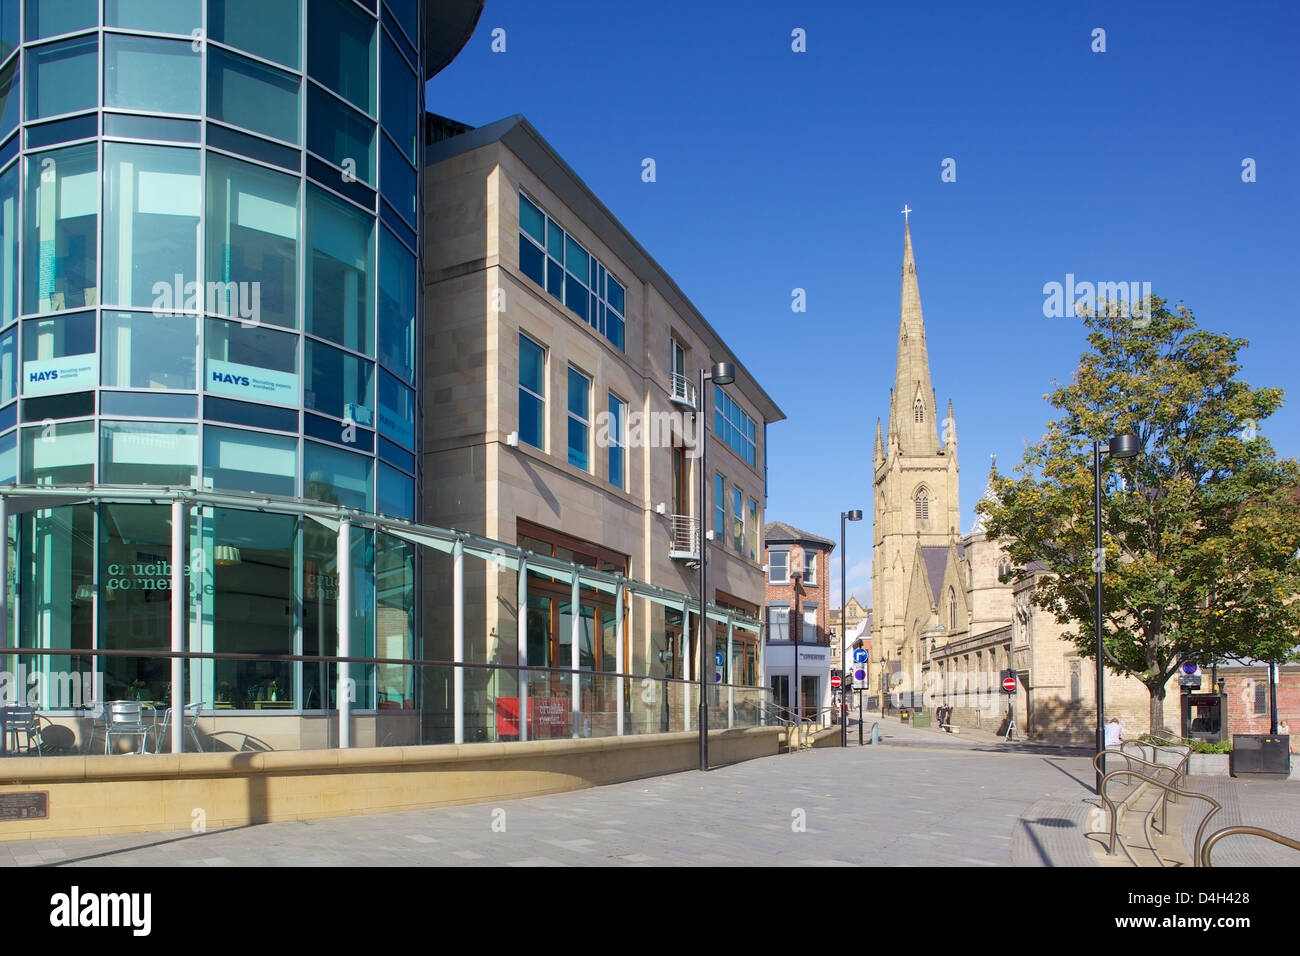 Esquina Crucible, Sheffield, South Yorkshire, Yorkshire, Inglaterra, Reino Unido. Foto de stock